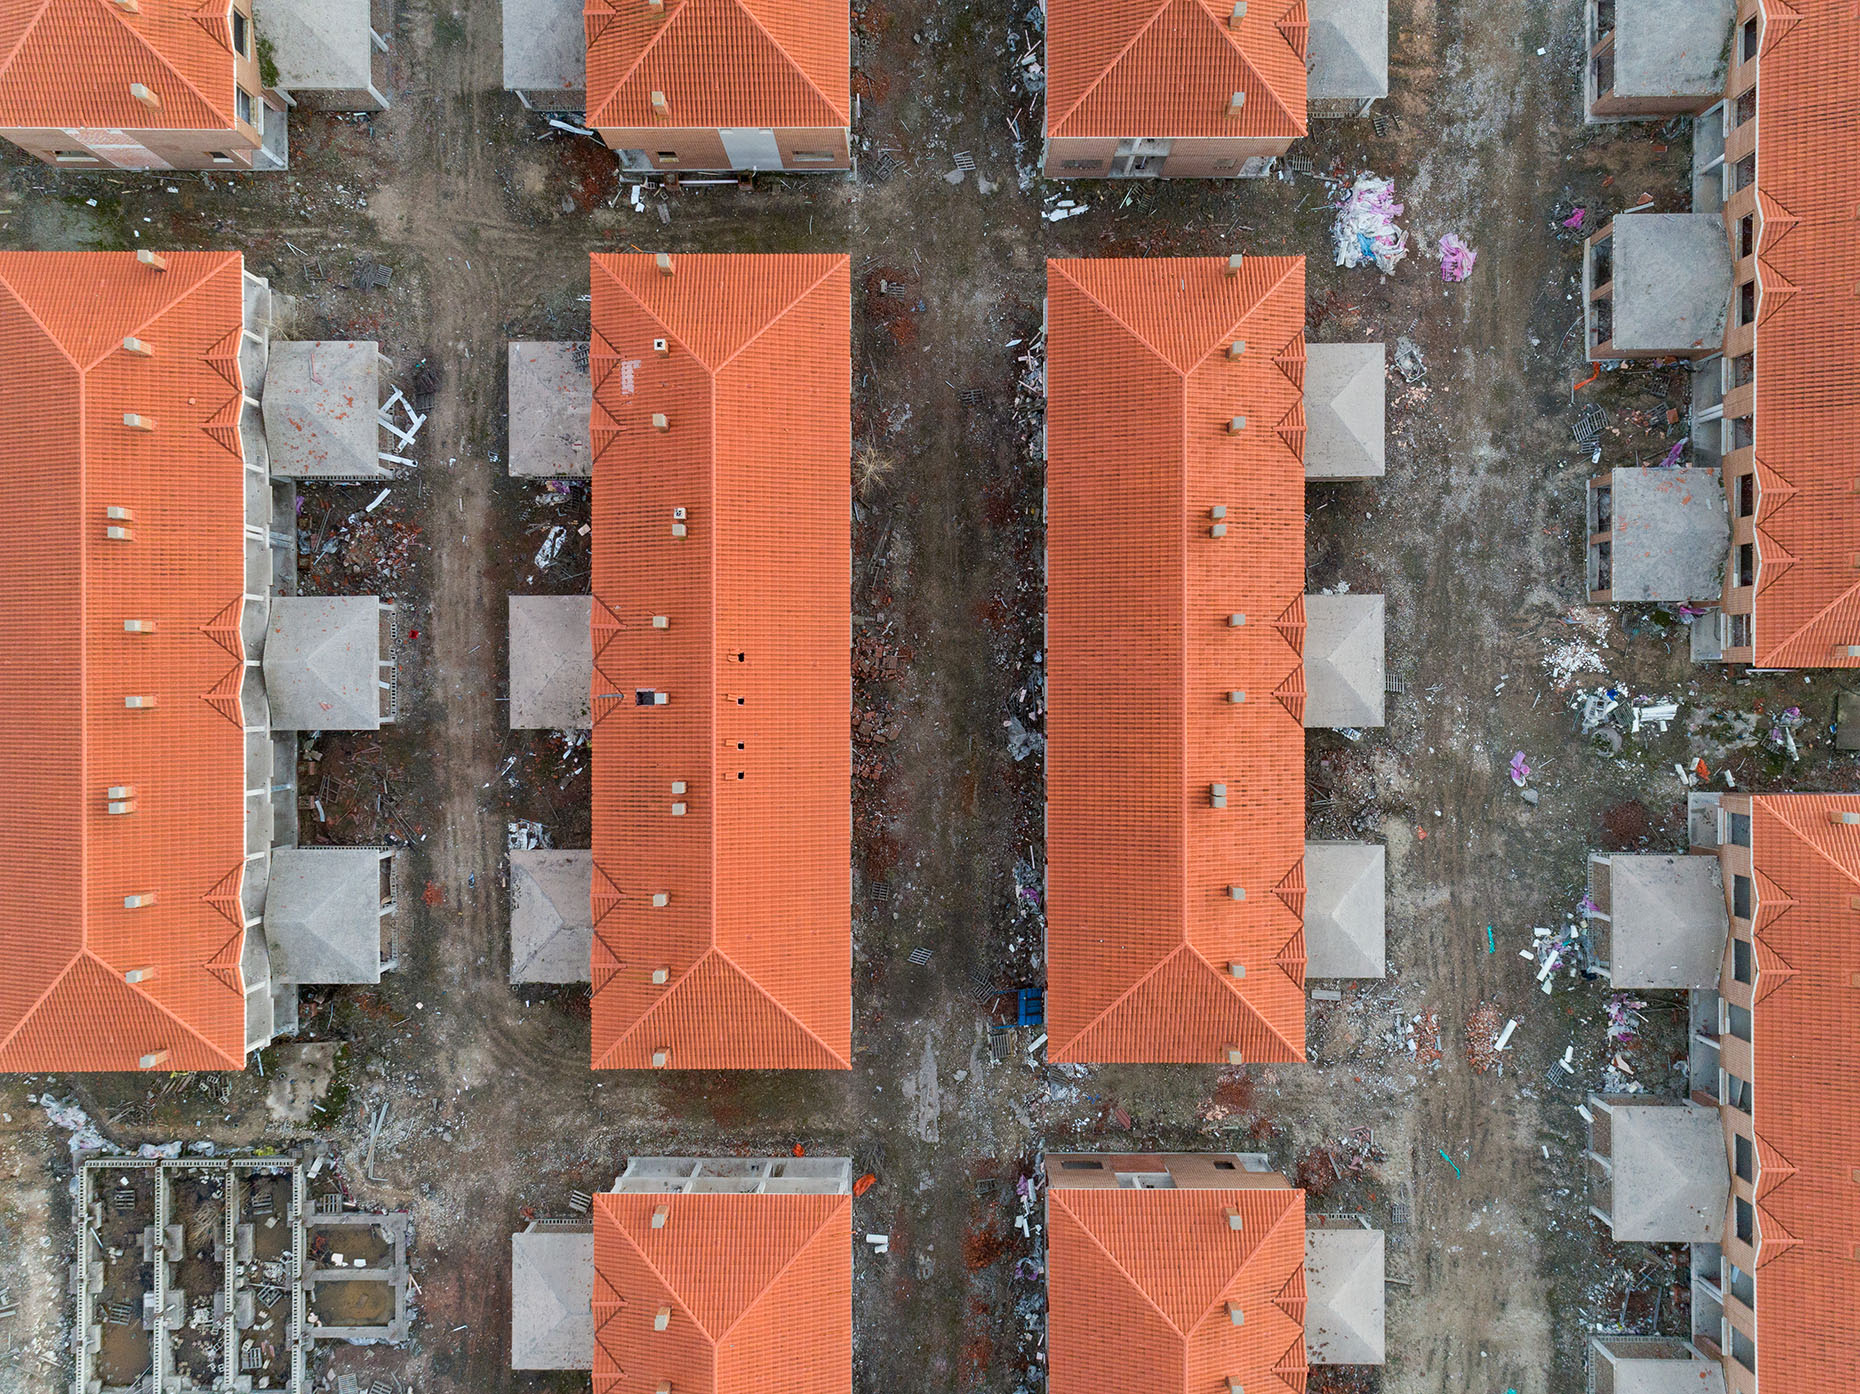 Drone photography abandoned housing spain